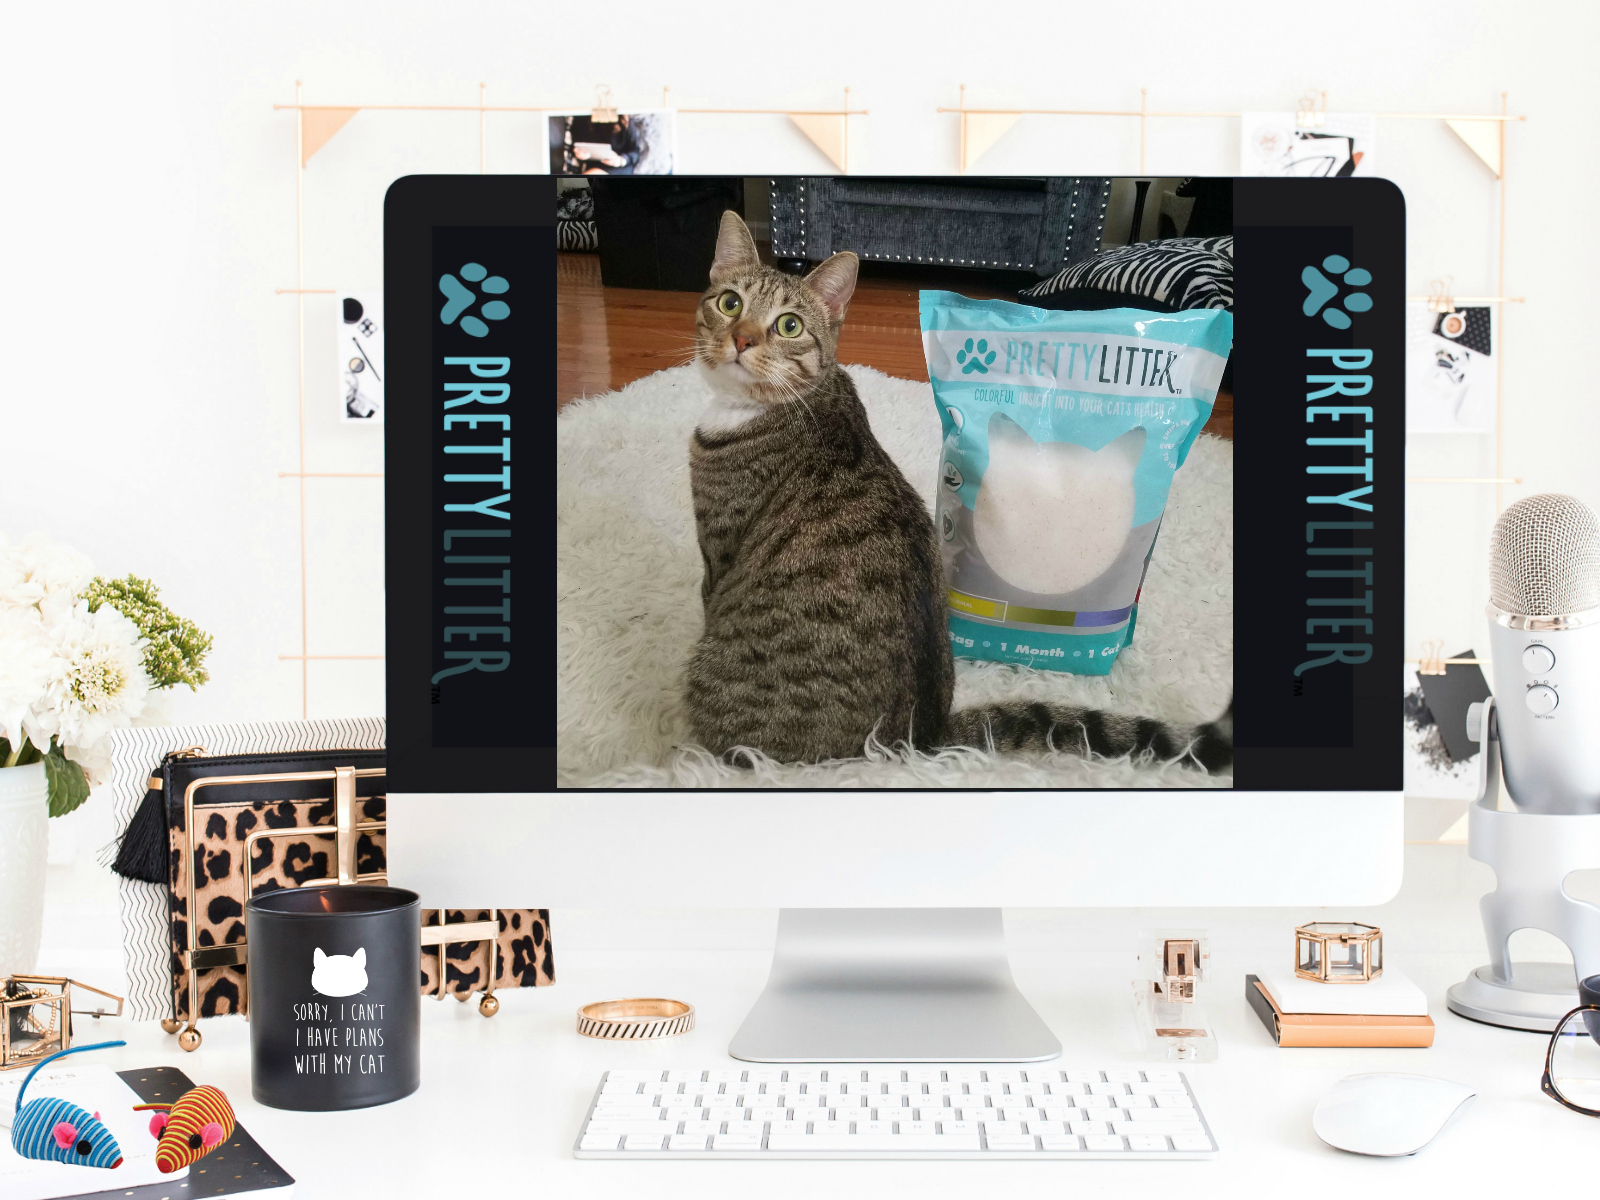 PrettyLitter - Health Monitoring Cat Litter Delivered To Your Door Monthly By Barbies Beauty Bits